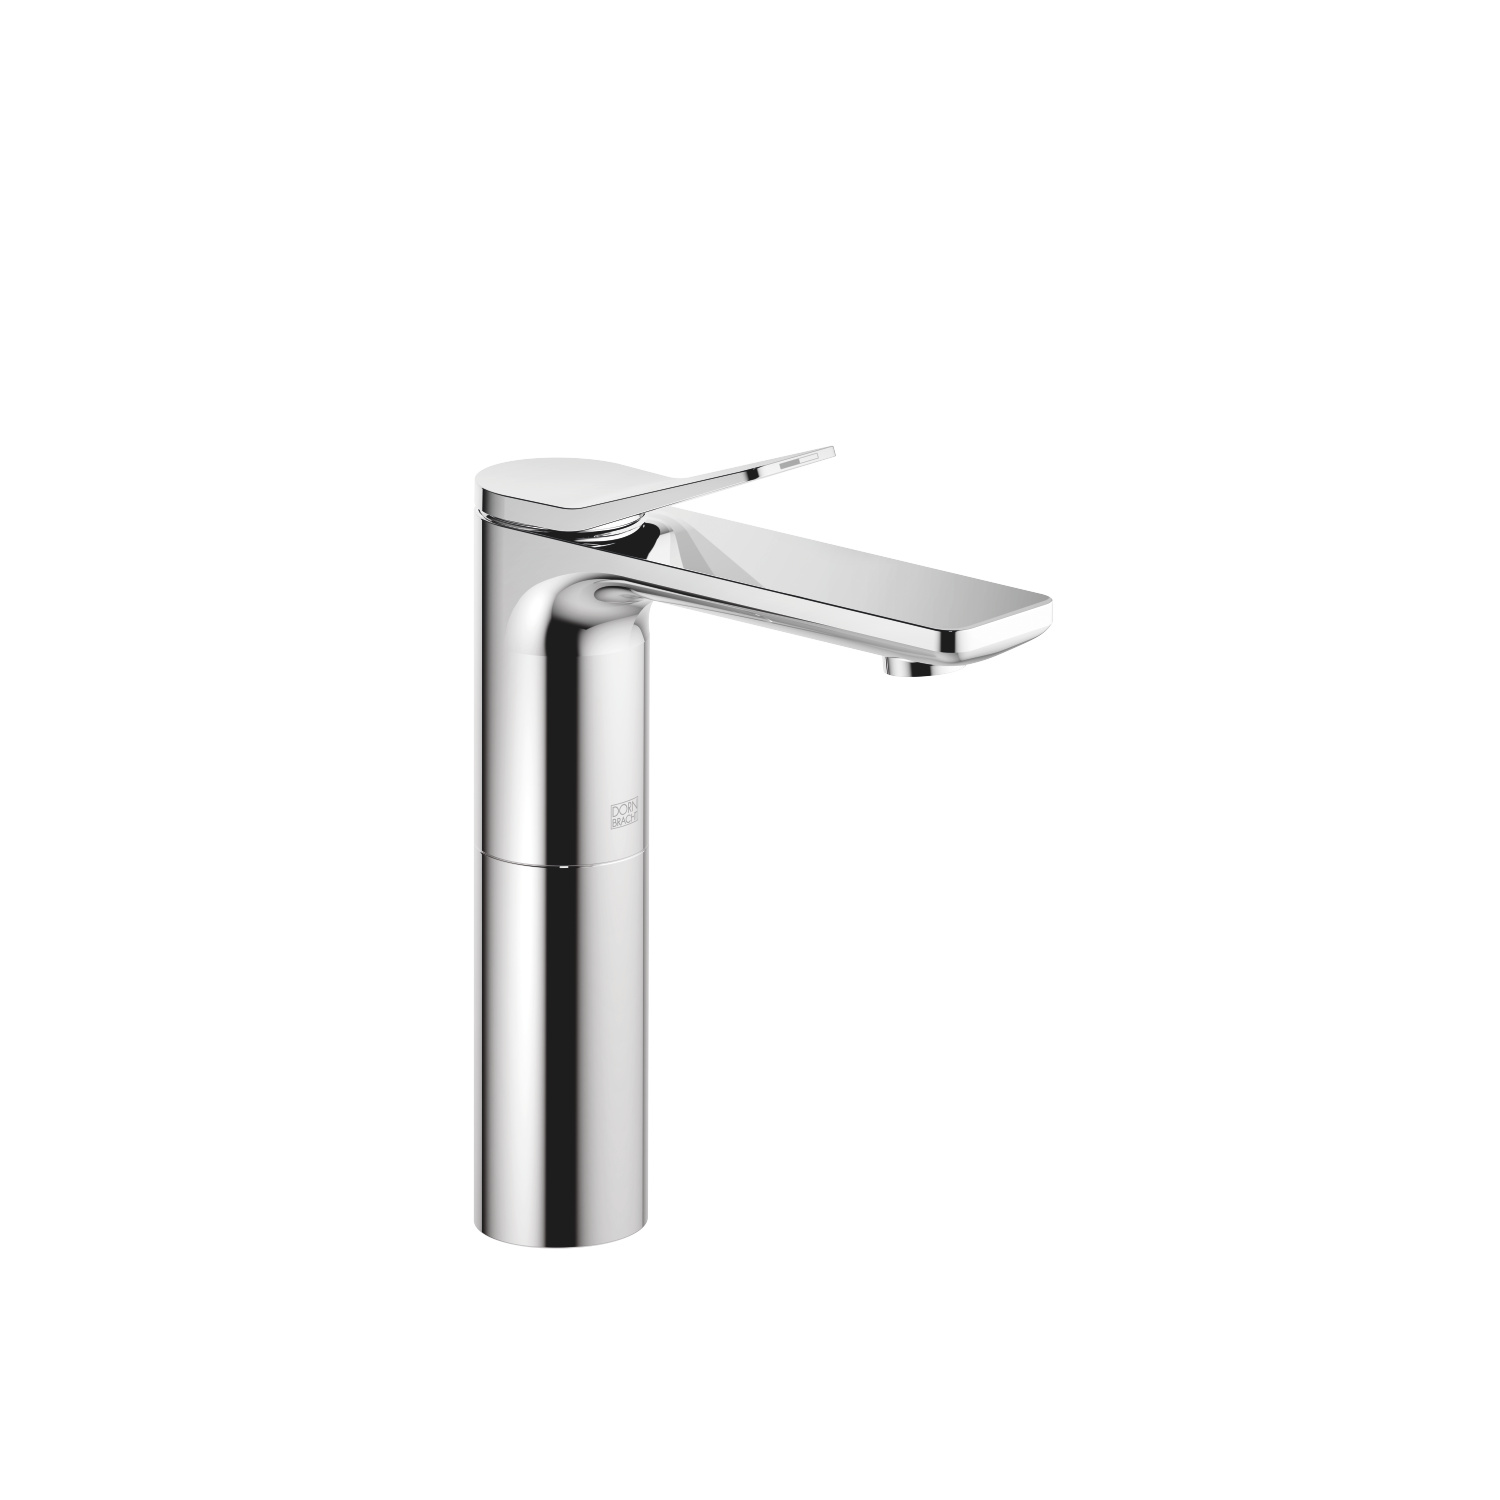 Single-lever basin mixer with high spout without pop-up waste - polished chrome